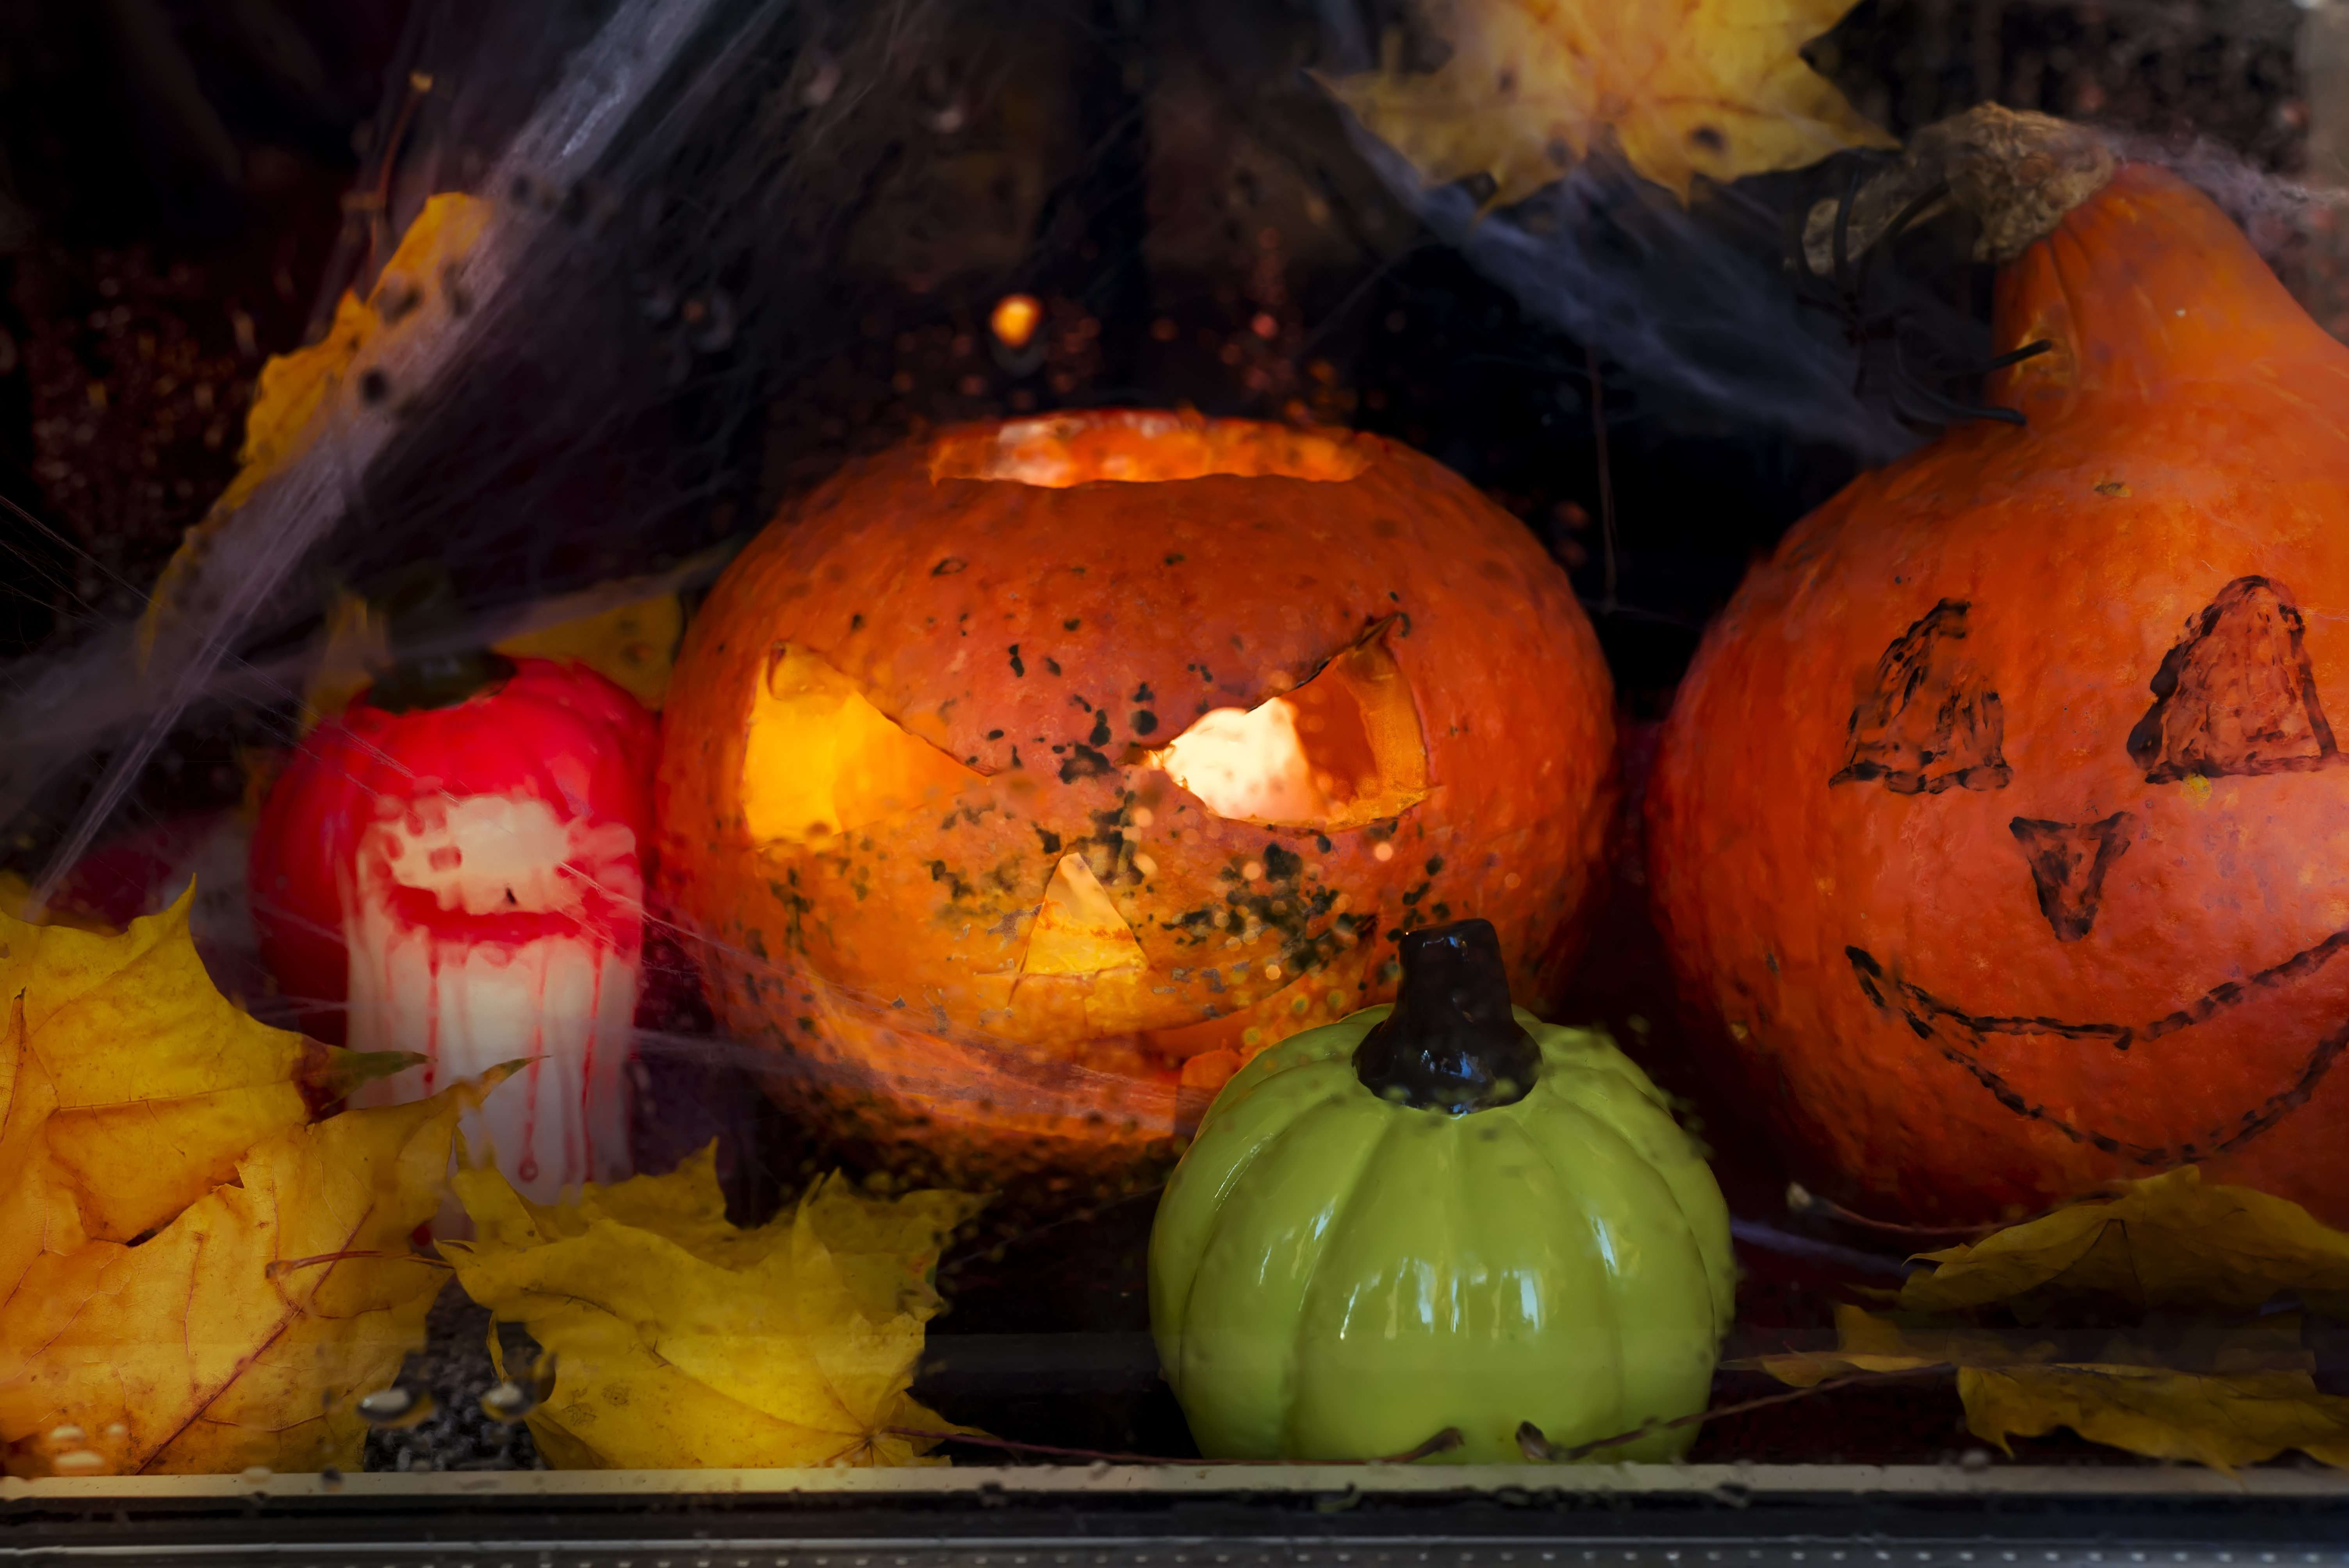 Halloween - pumpkins, candles and web on leaves and logs with a warm and cold glow, against the background of a window with cobwebs, with the inscription of happy halloween